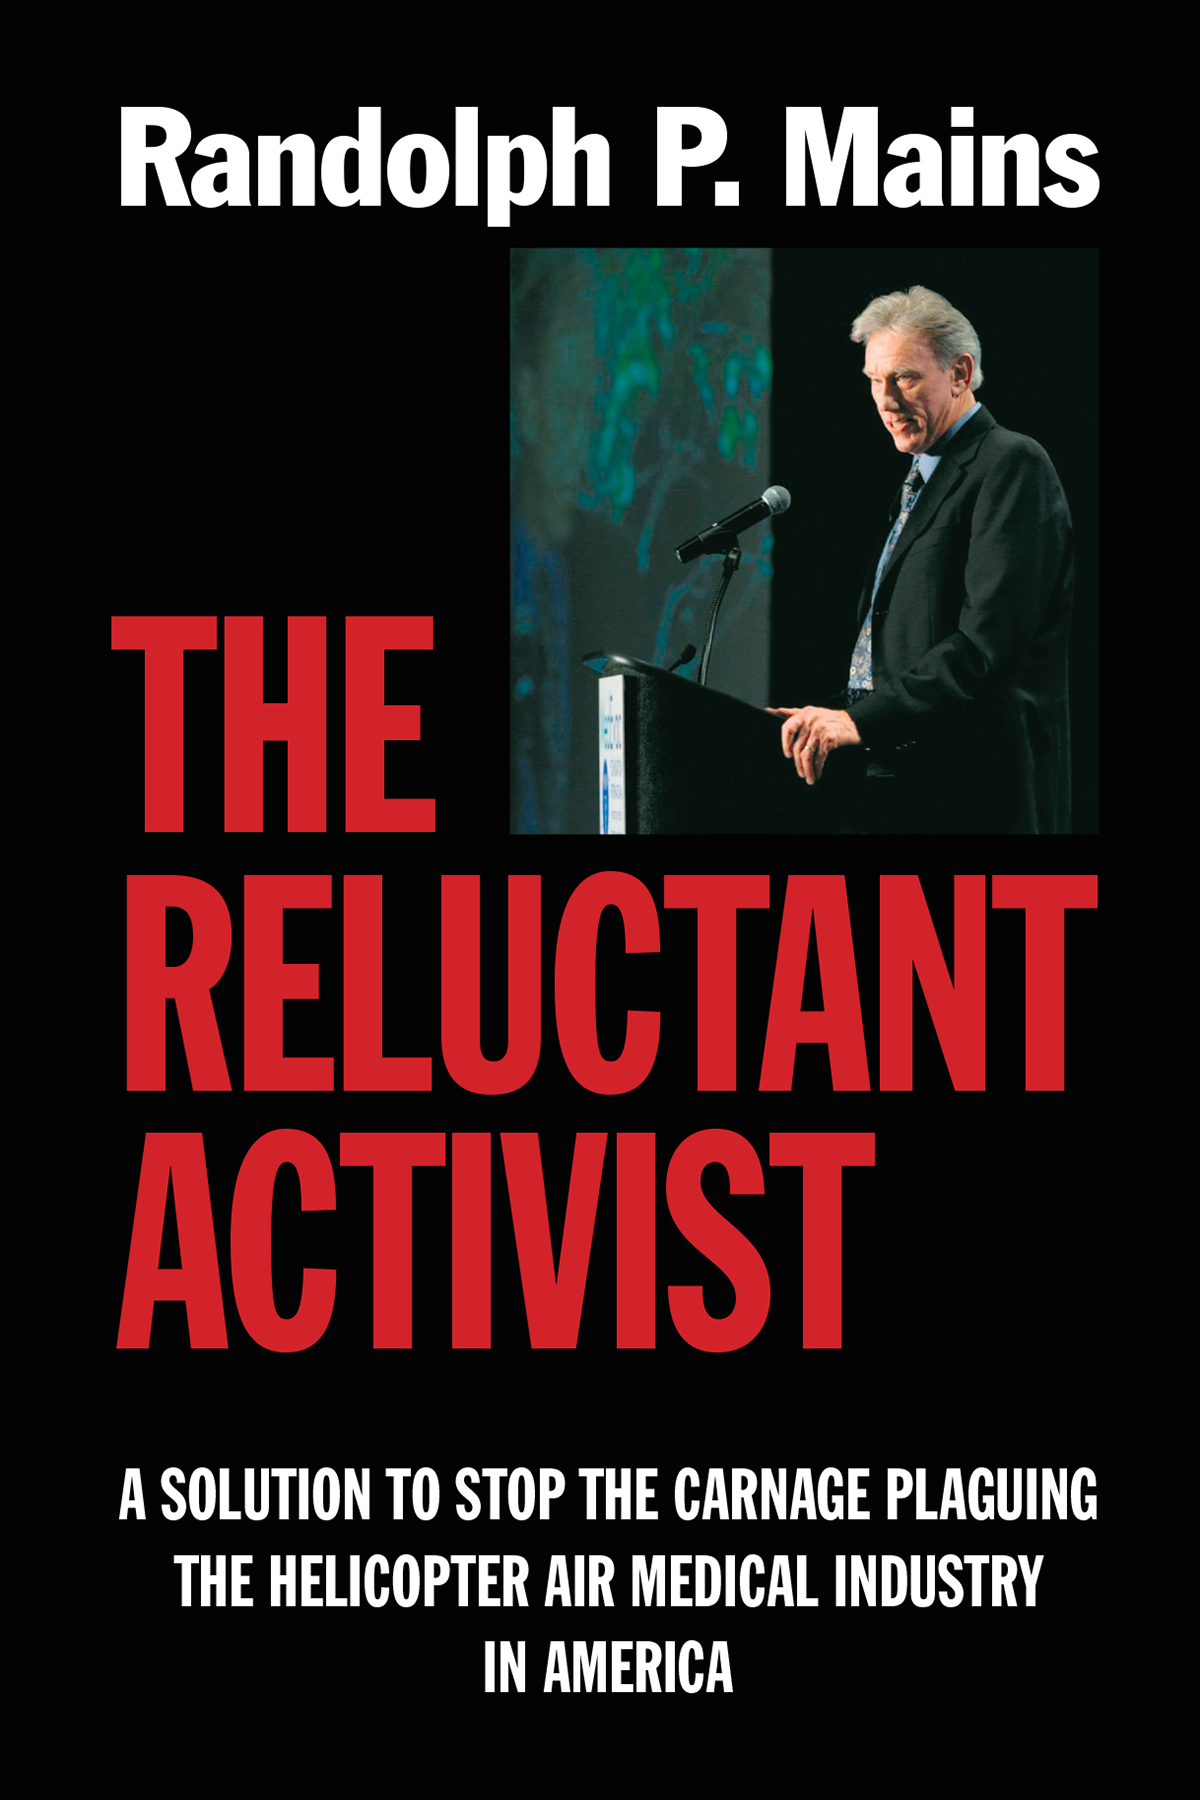 """The Reluctant Activist"" by Randolph P. Mains"